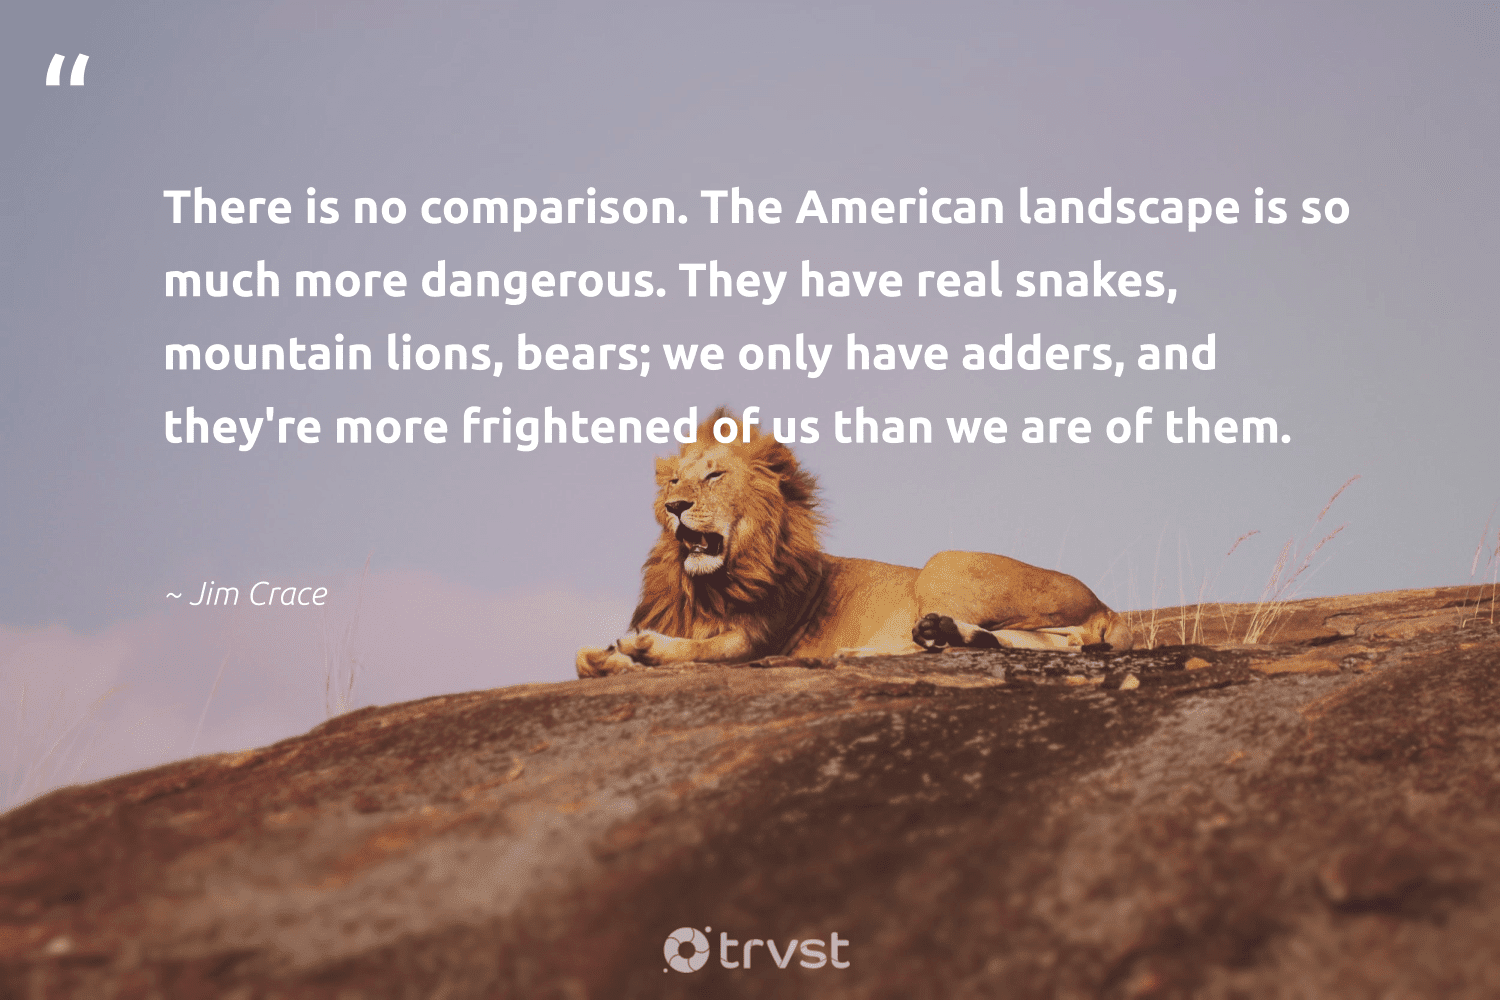 """""""There is no comparison. The American landscape is so much more dangerous. They have real snakes, mountain lions, bears; we only have adders, and they're more frightened of us than we are of them.""""  - Jim Crace #trvst #quotes #mountain #lions #splendidanimals #collectiveaction #lion #beinspired #nature #dosomething #big5 #dogood"""